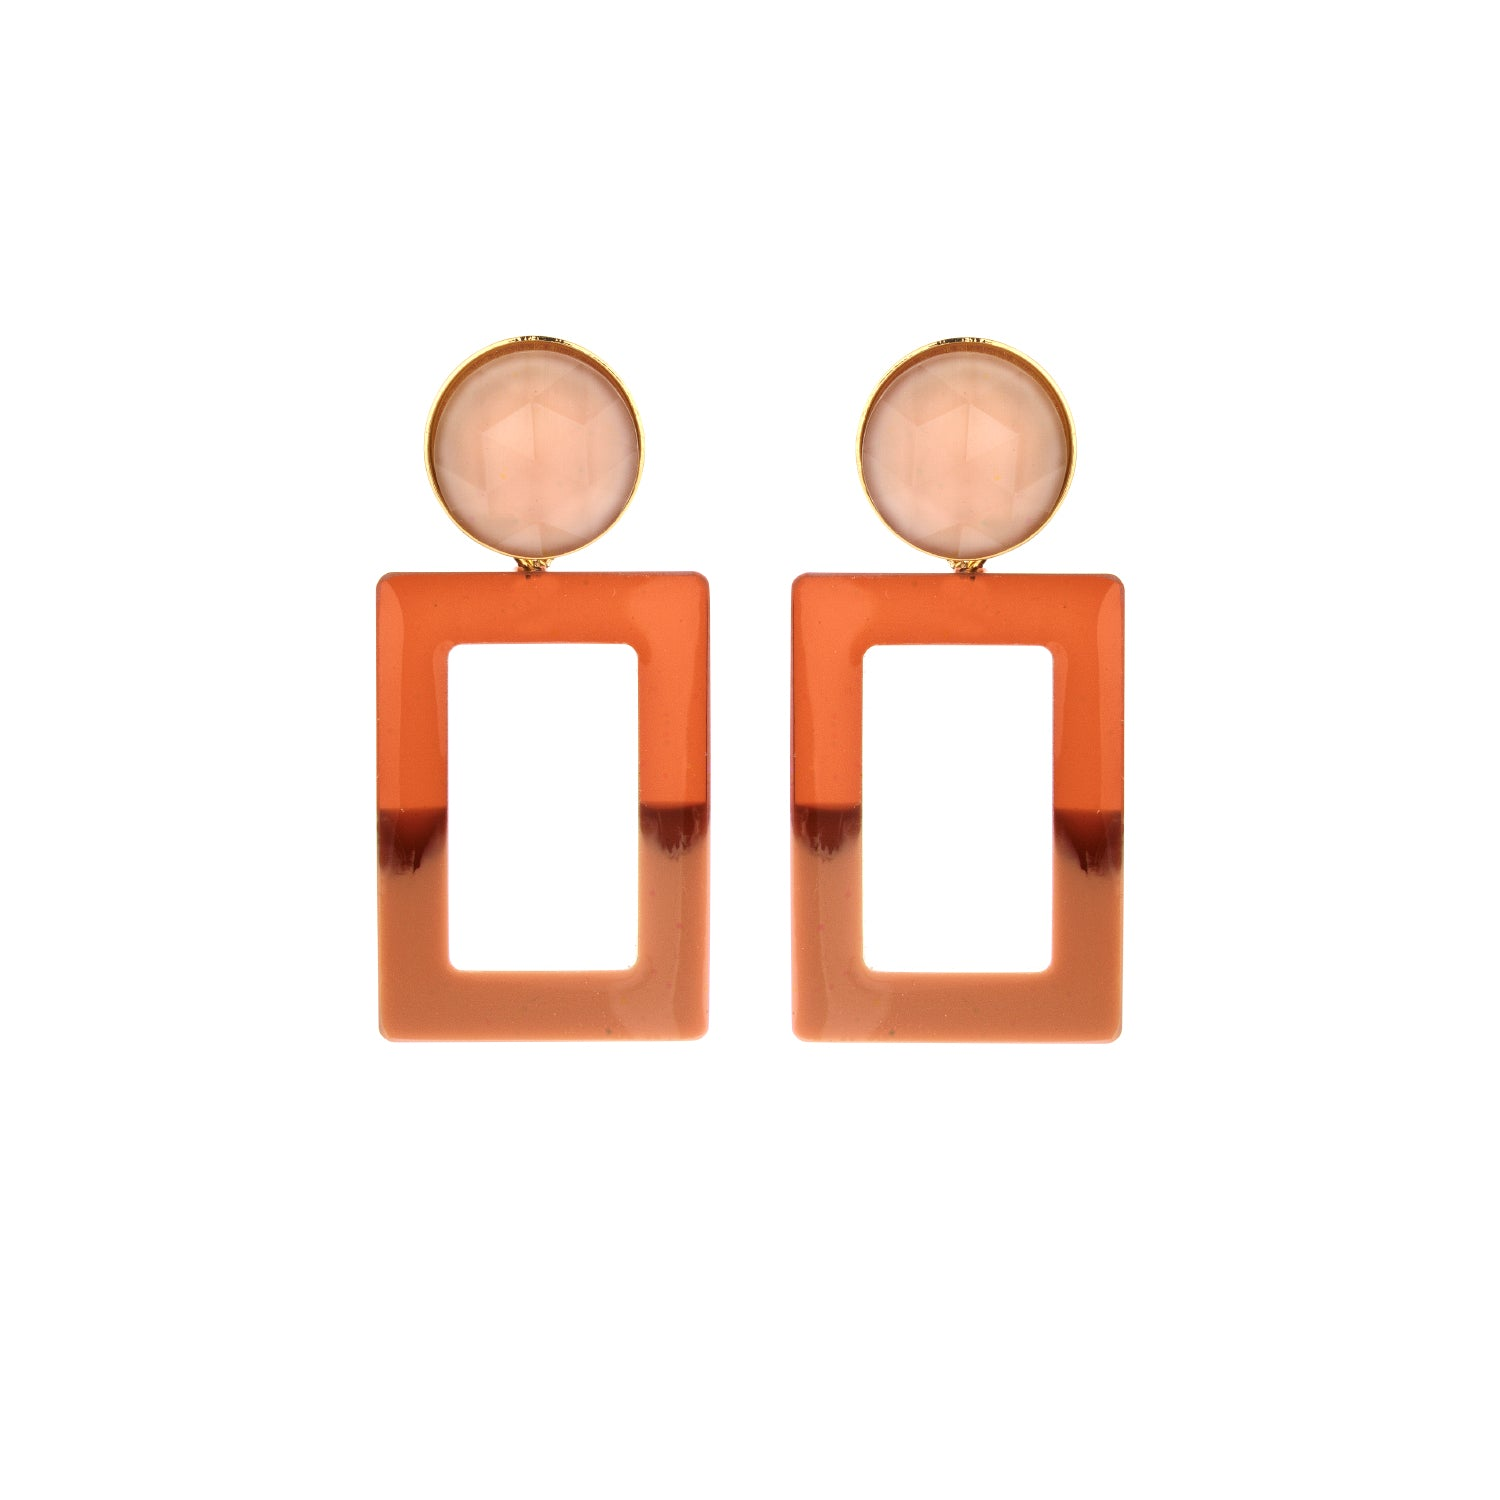 Mary small duo camel earring